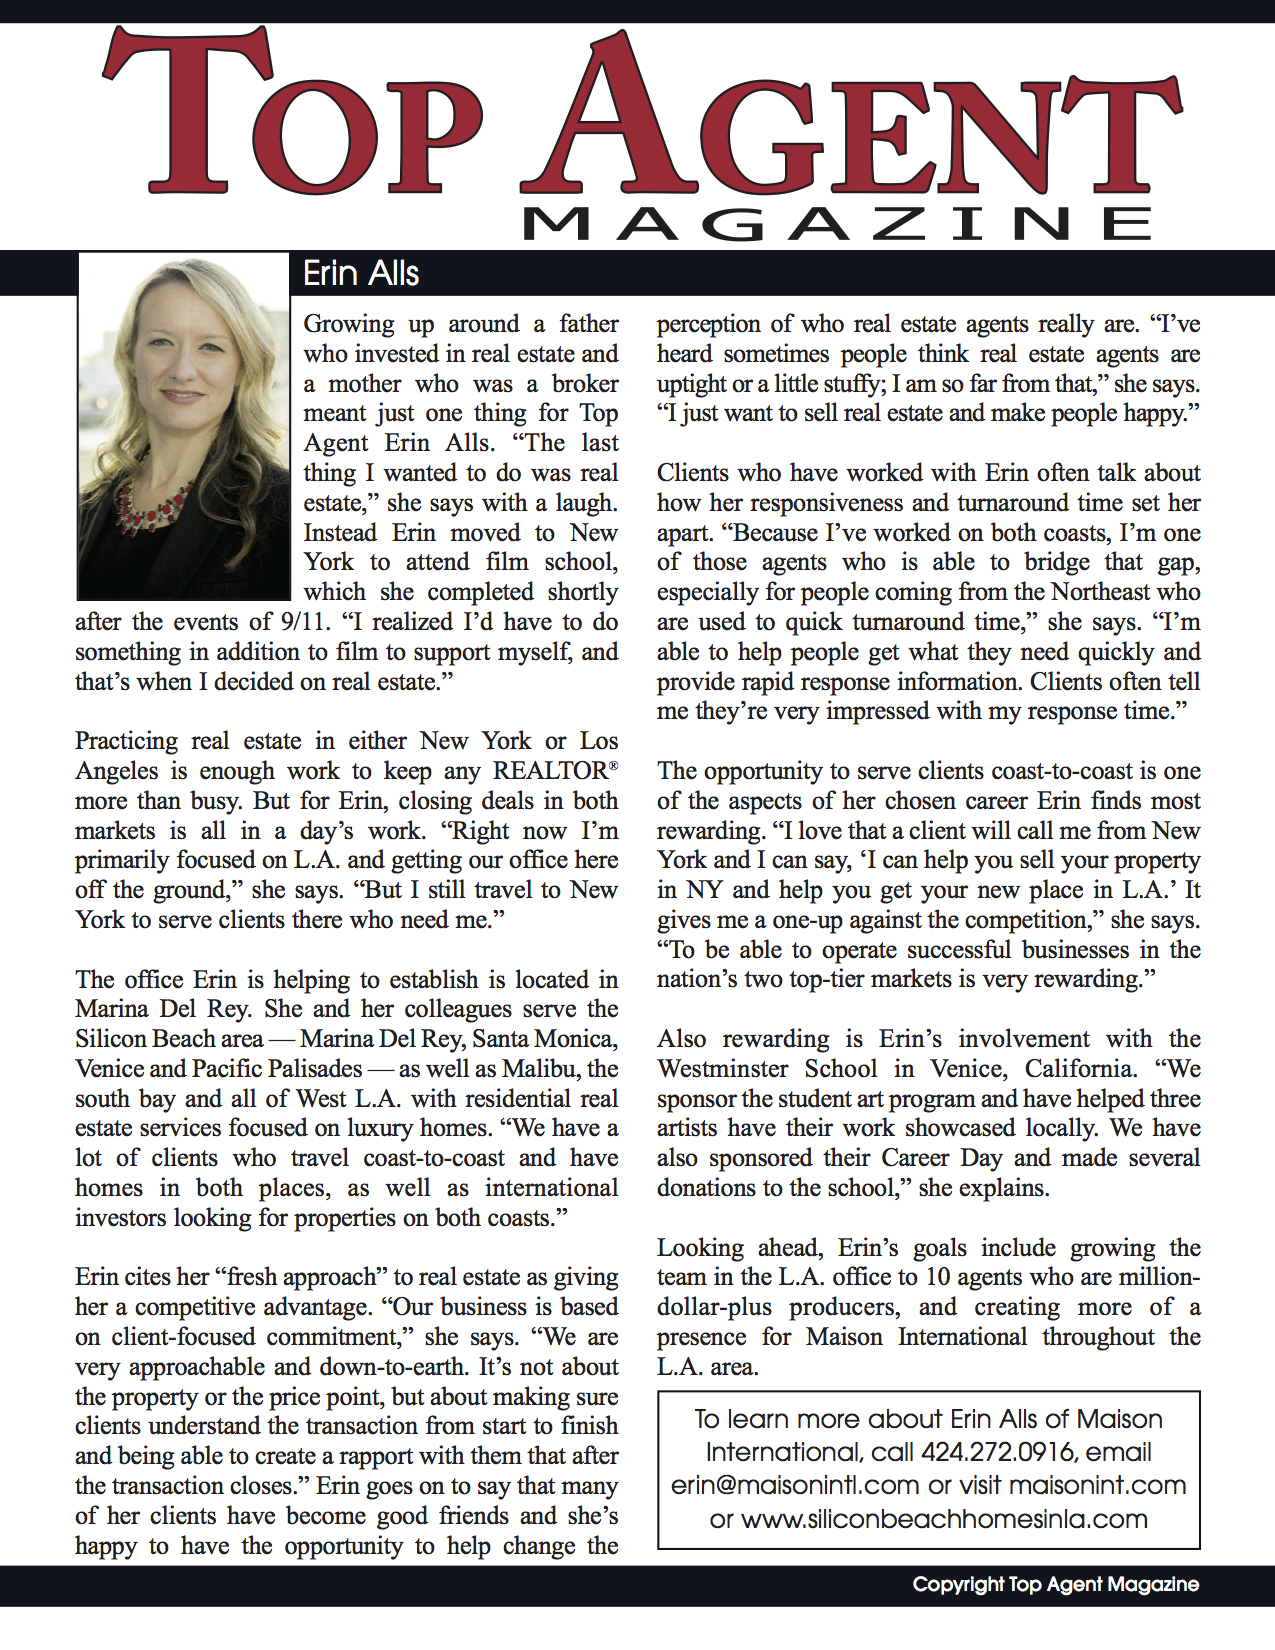 Erin was recently featured in Top Agent Magazine take a look on how she offers a fresh approach to doing Real Estate in Silicon Beach.